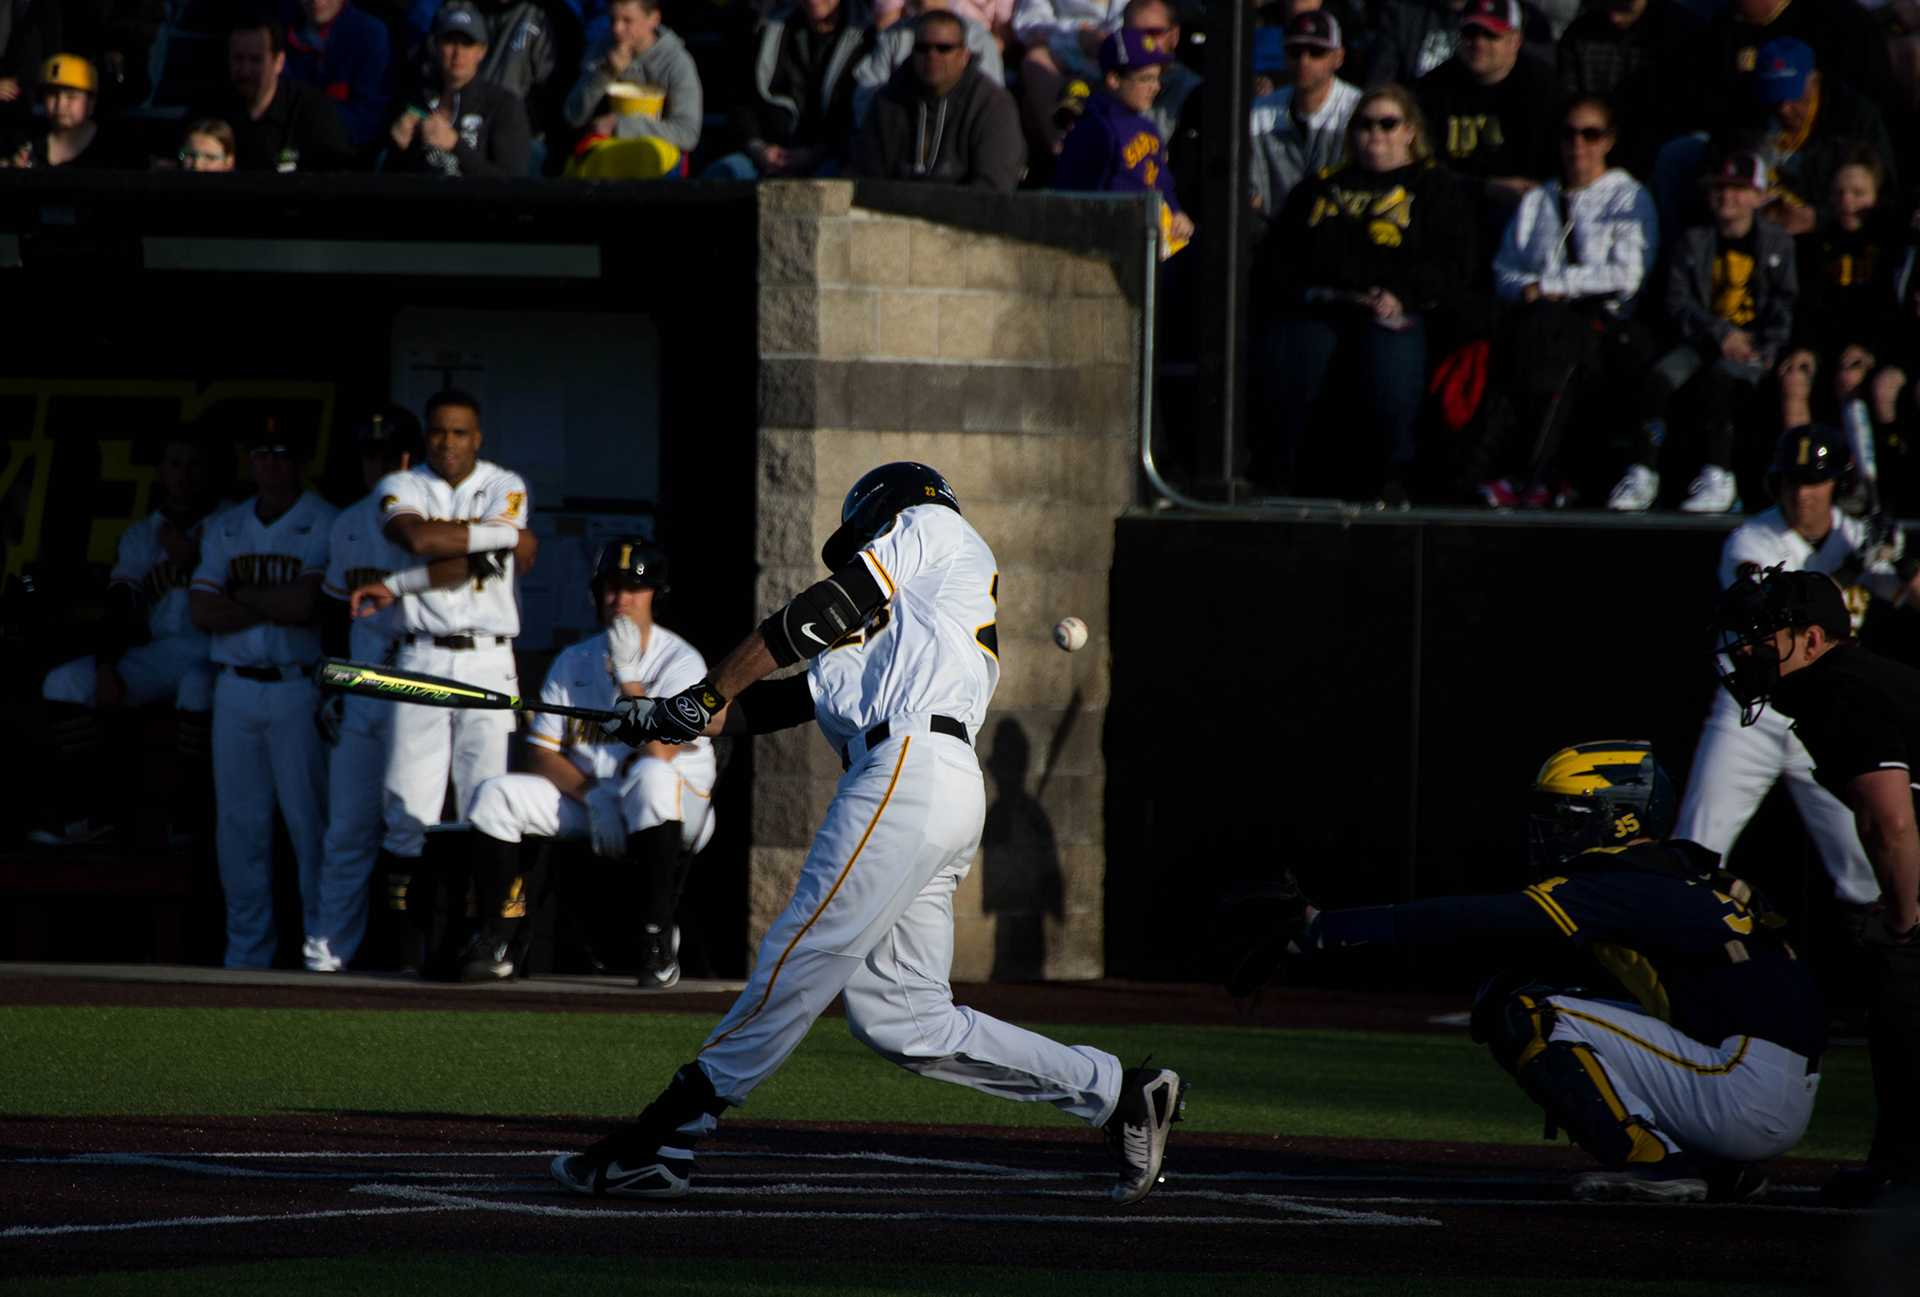 Chris Whelan bats during Iowa's game against Michigan at Banks Field  on April 27, 2018. The Hawkeyes won the game 4-2. (Megan Nagorzanski/The Daily Iowan)